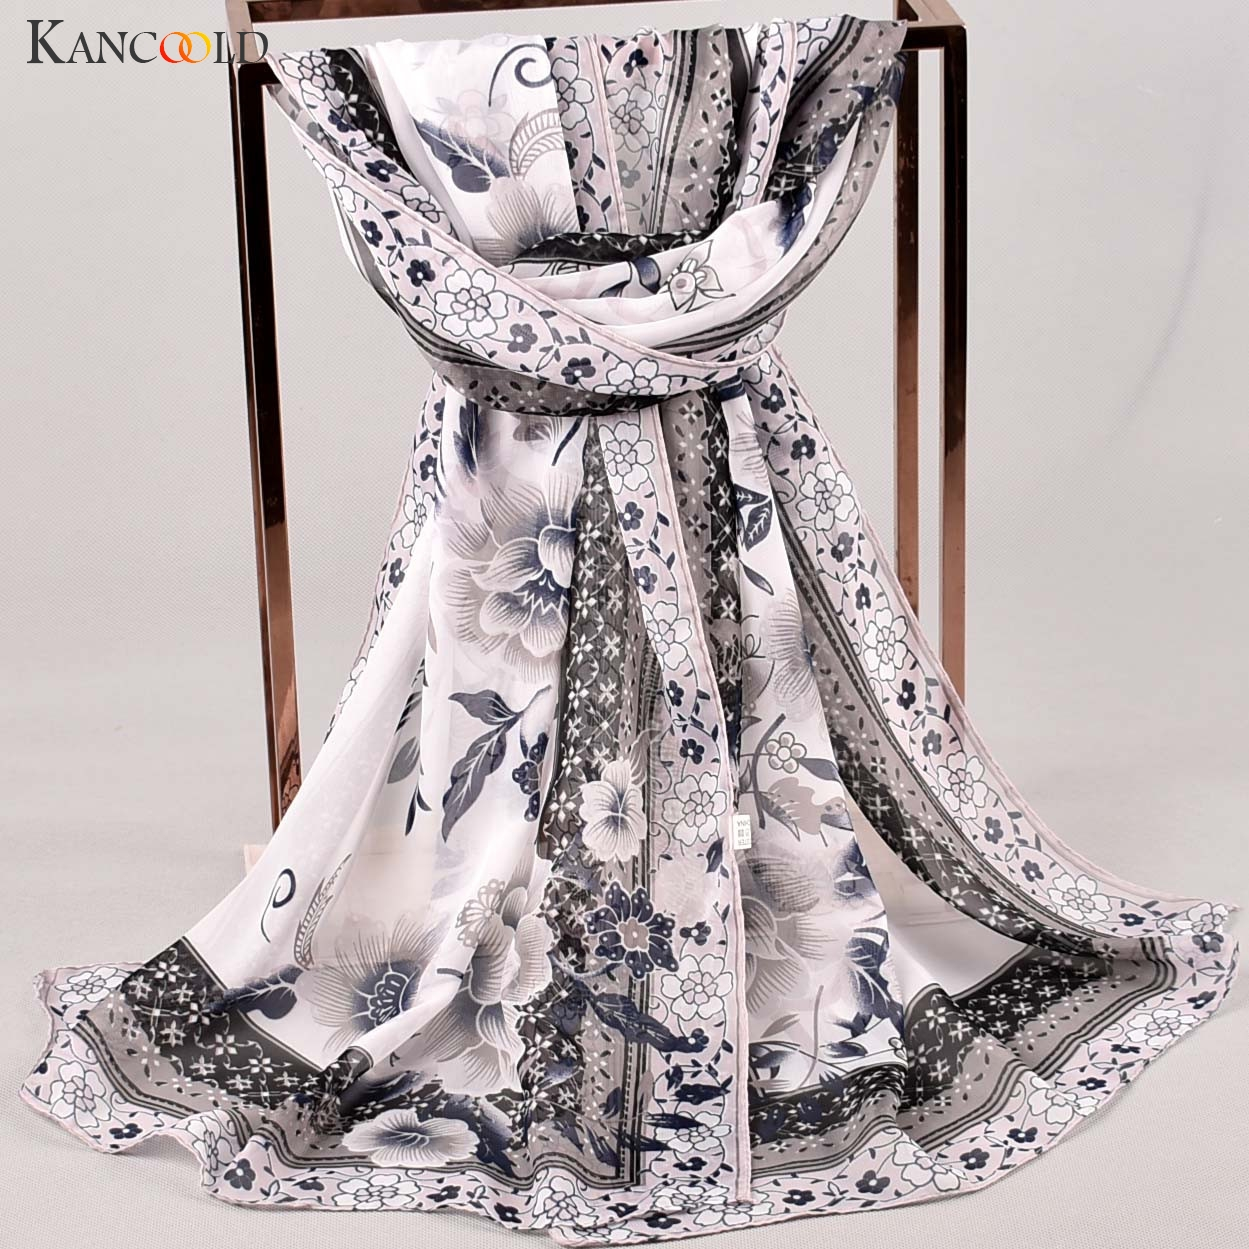 KANCOOLD   Scarf   Women Fashion Printed Soft Chiffon Shawl   Scarf     Wrap     Wraps     Scarves   High quality casual   scarf   women 2018Nov5